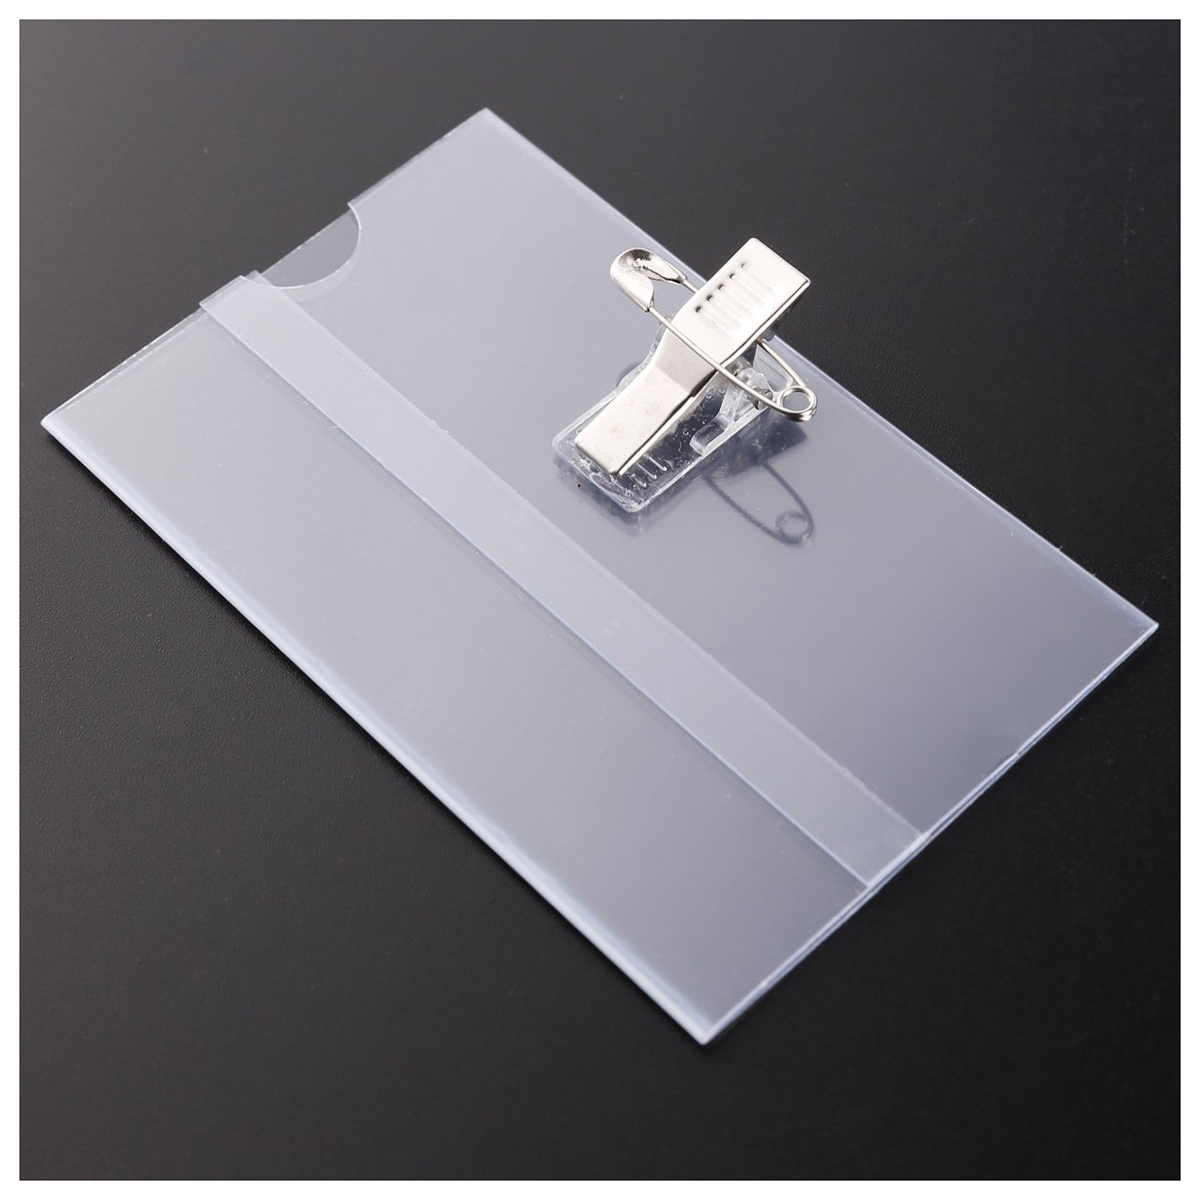 LJL clerk working ID card holder Exhibition identification card cover tag Transparent Plastic